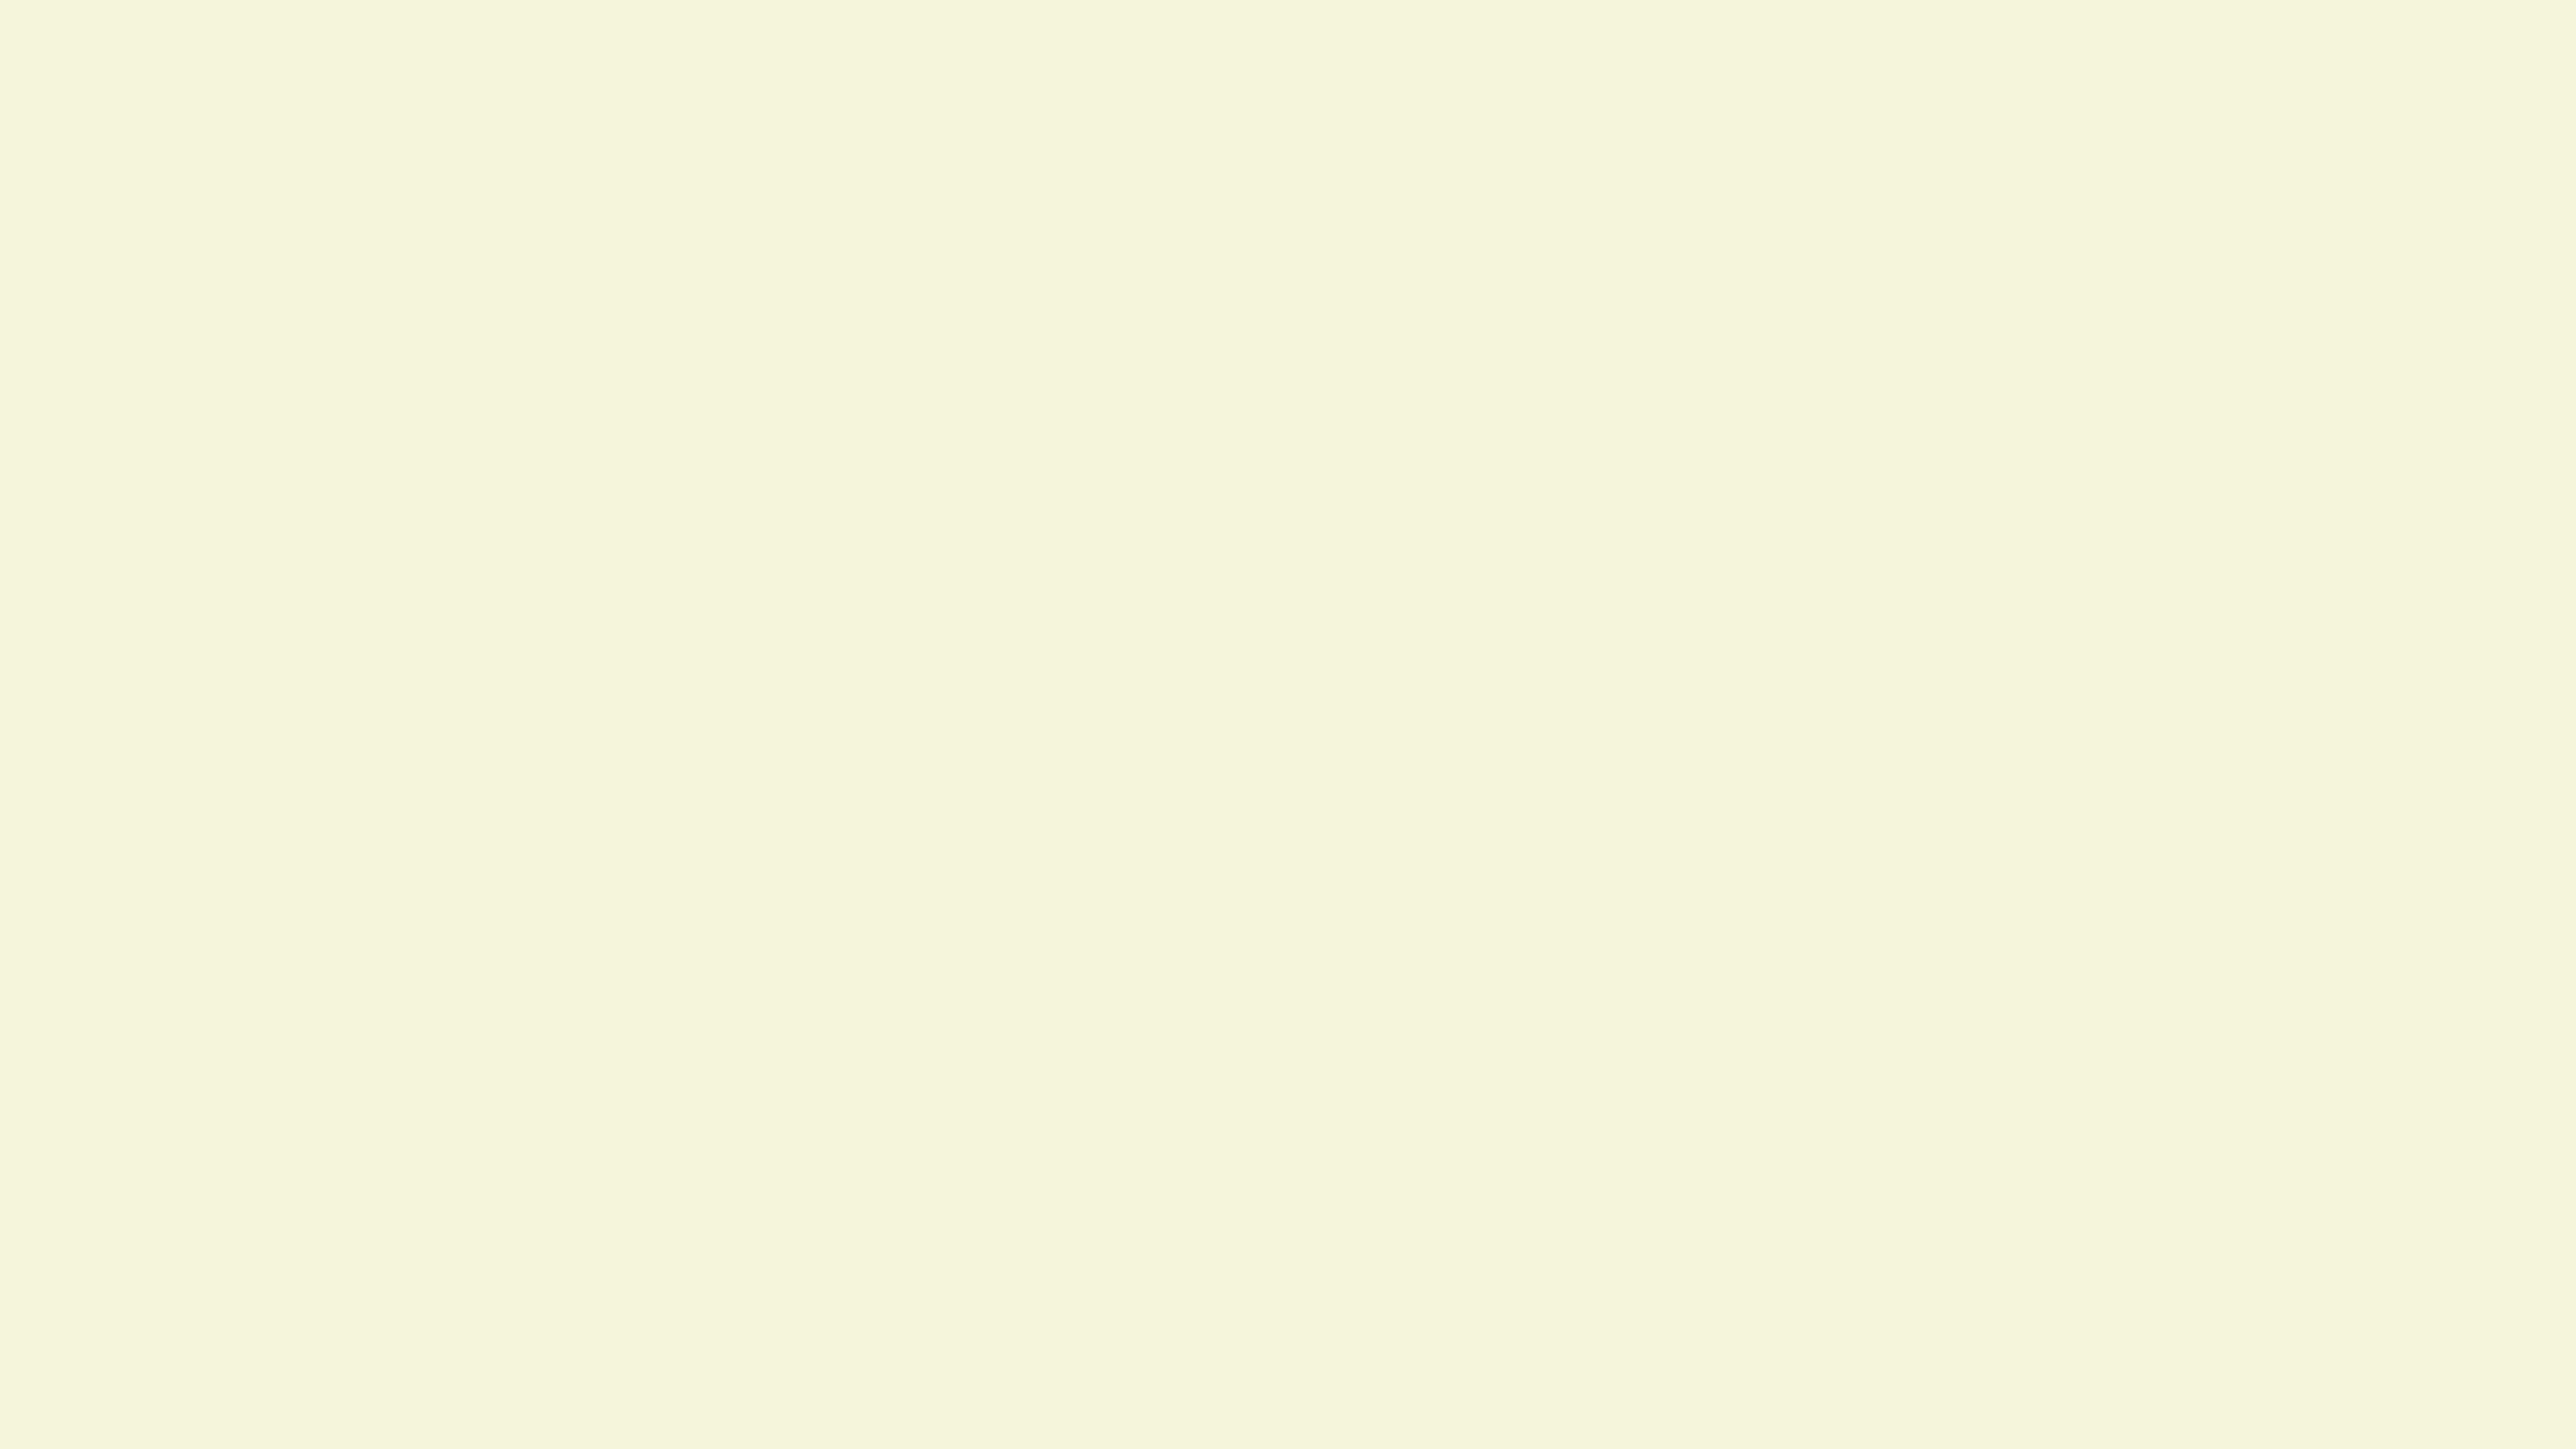 5120x2880 Beige Solid Color Background